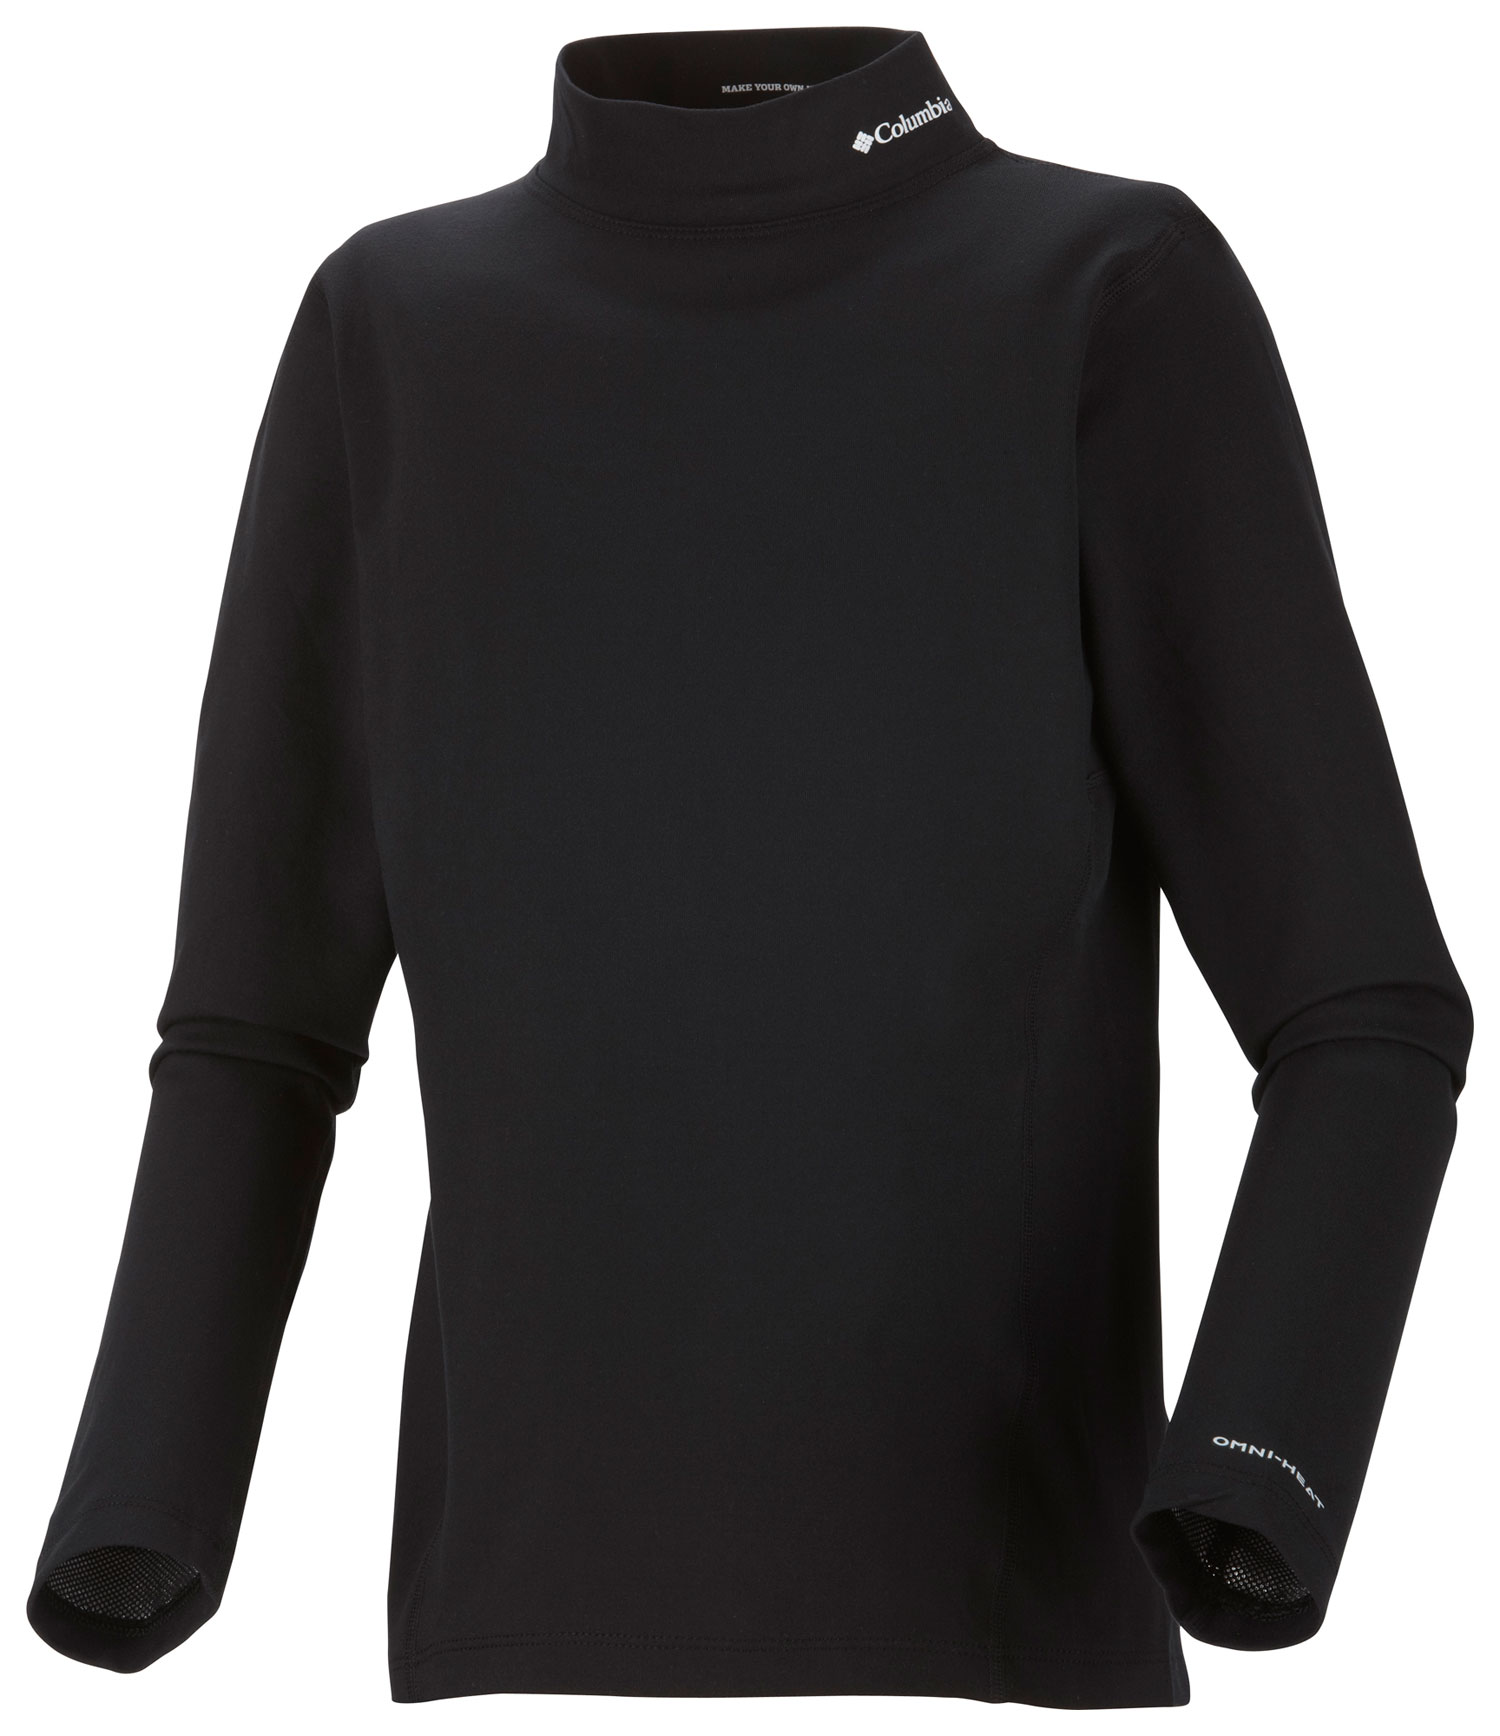 Key Features of the Columbia Baselayer Midweight Mock Neck L/S Top: FABRIC 85% polyester/15% elastane re?ective print jersey. Omni-Heat thermal re?ective Omni-Wick Antimicrobial - $28.95